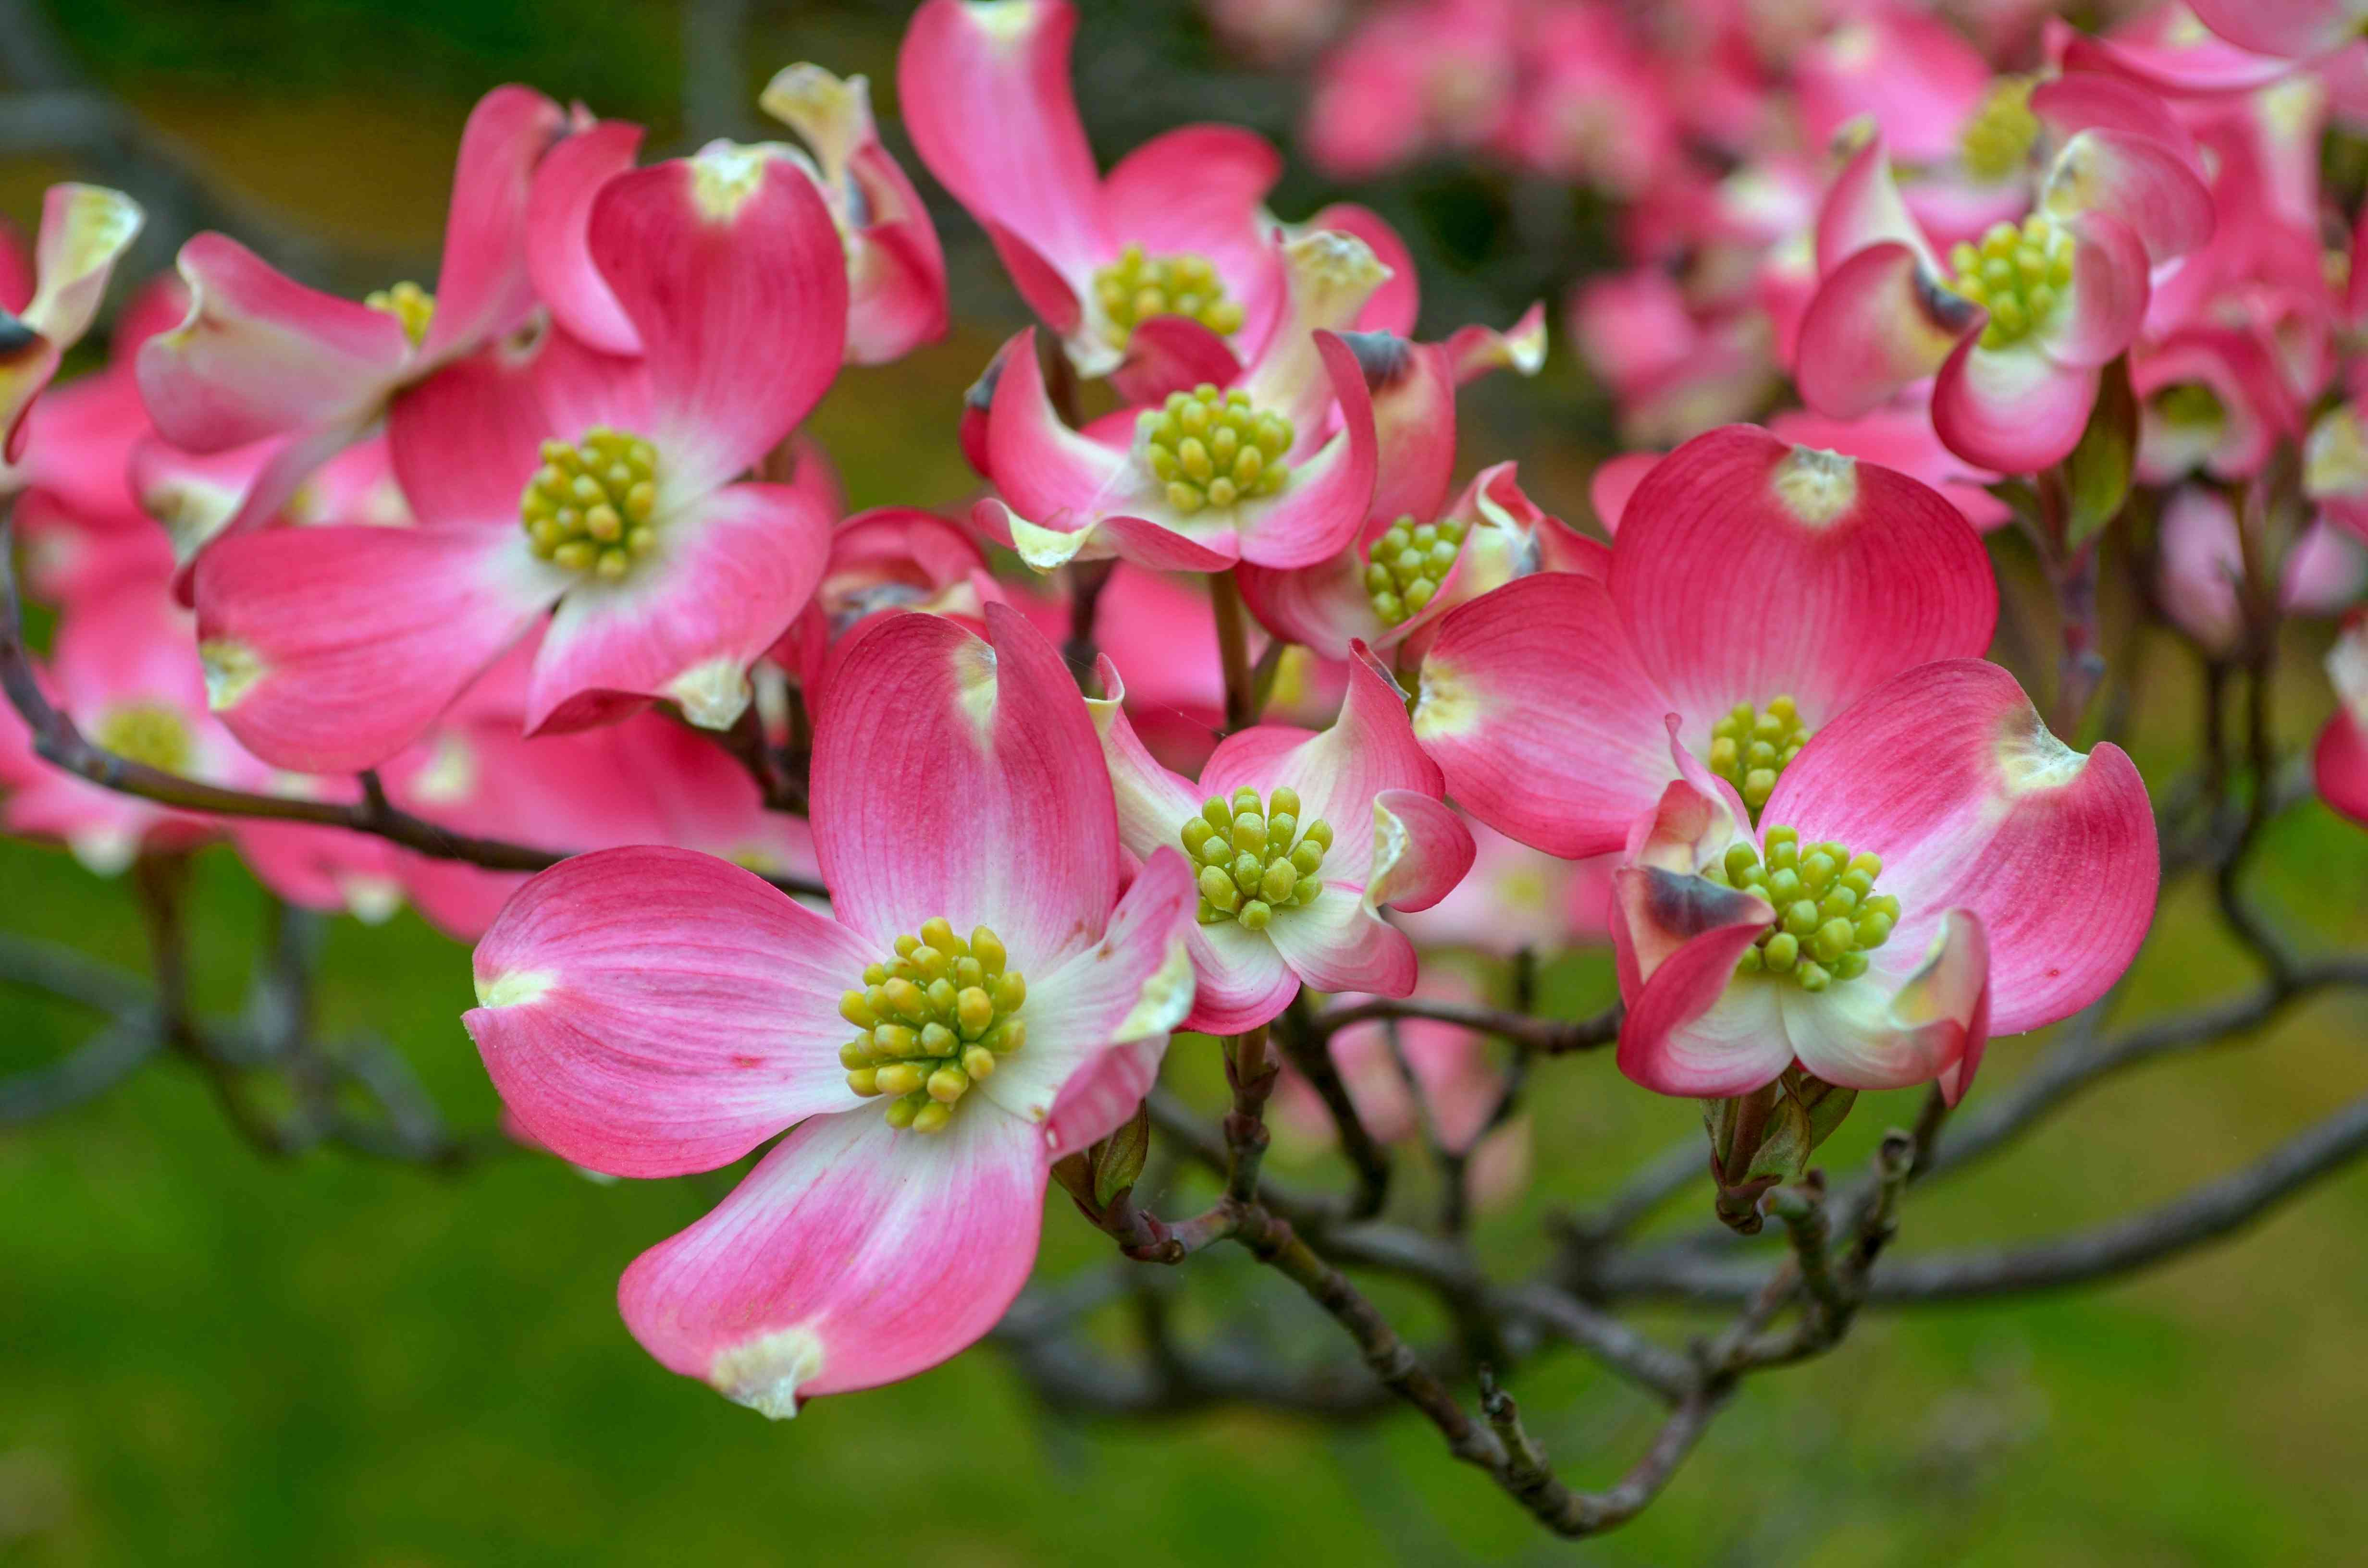 Group of Pink Dogwood Flowers